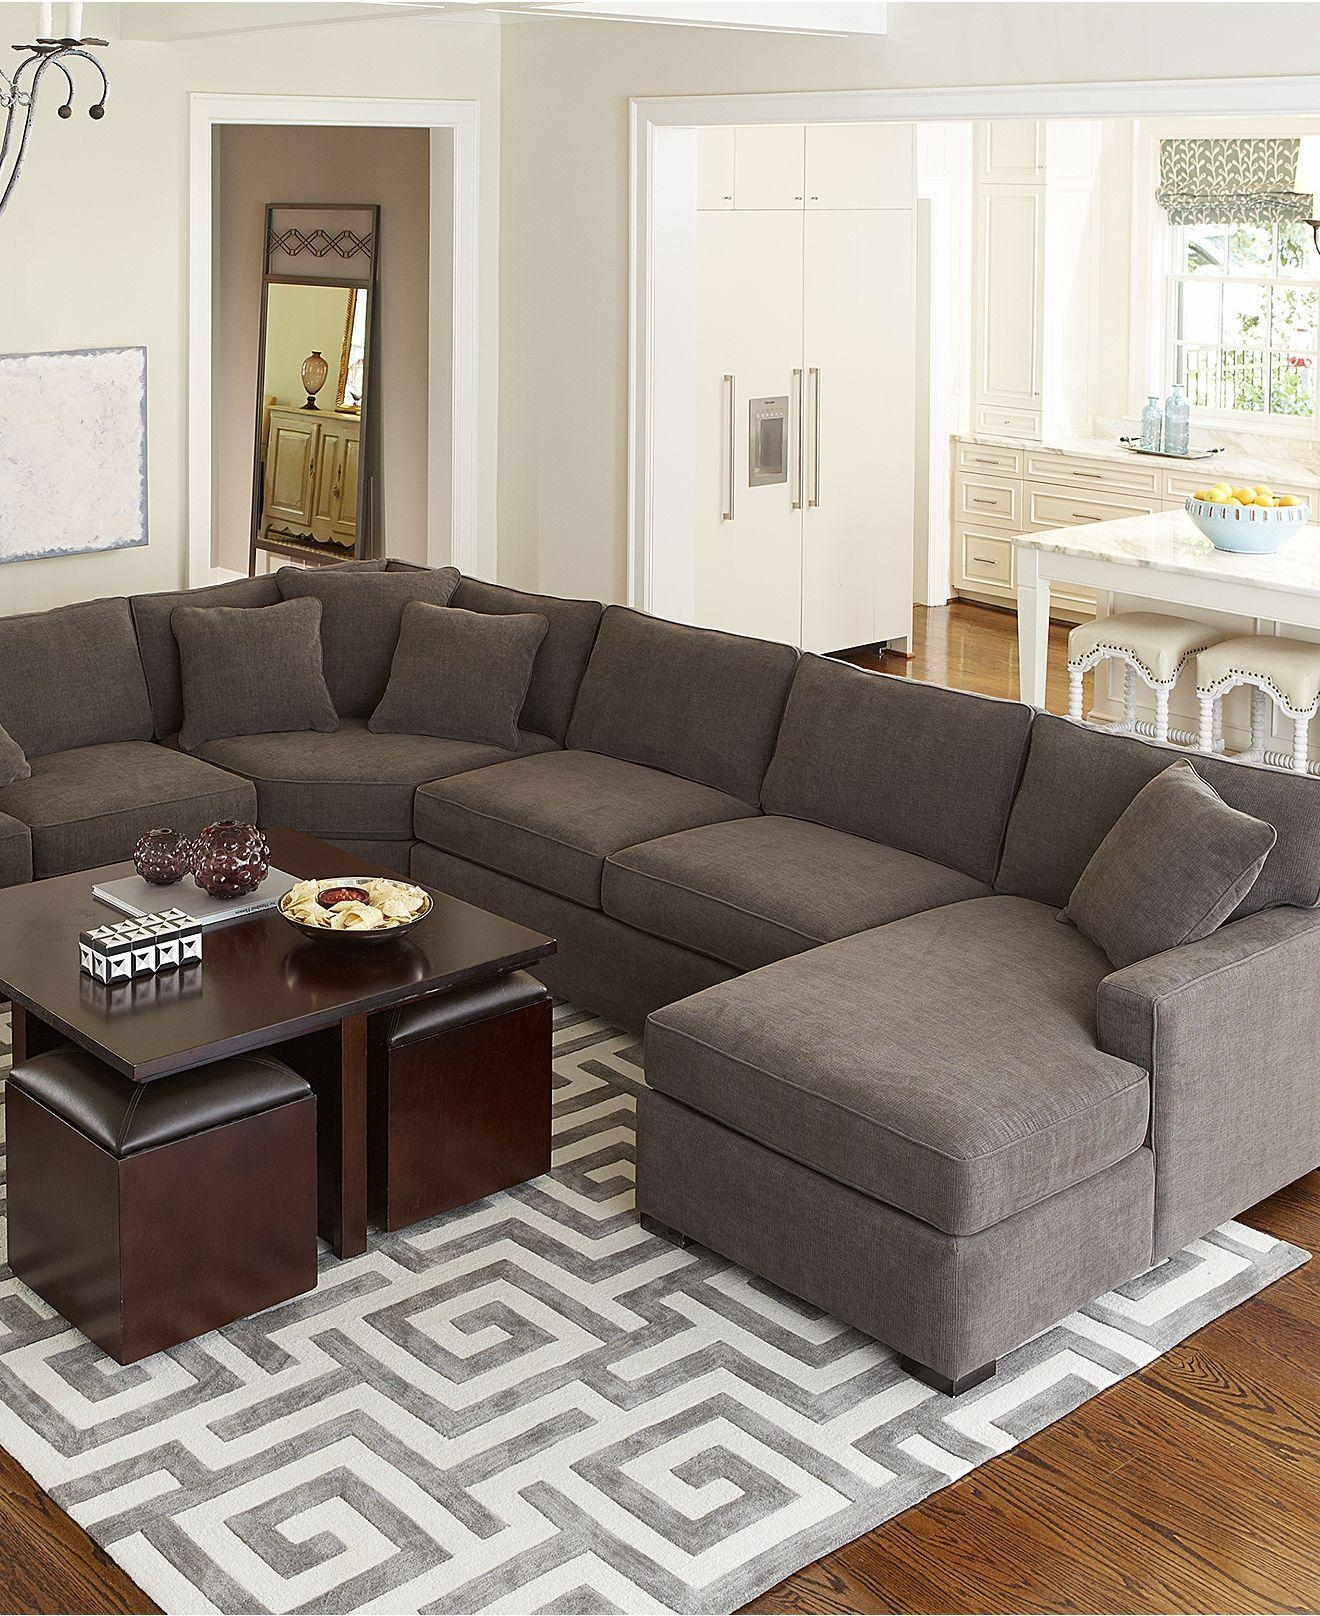 Sofas Center : Sectional Sofa Macys Archaicawful Pictures Ideas With Macys Sectional (Image 15 of 20)